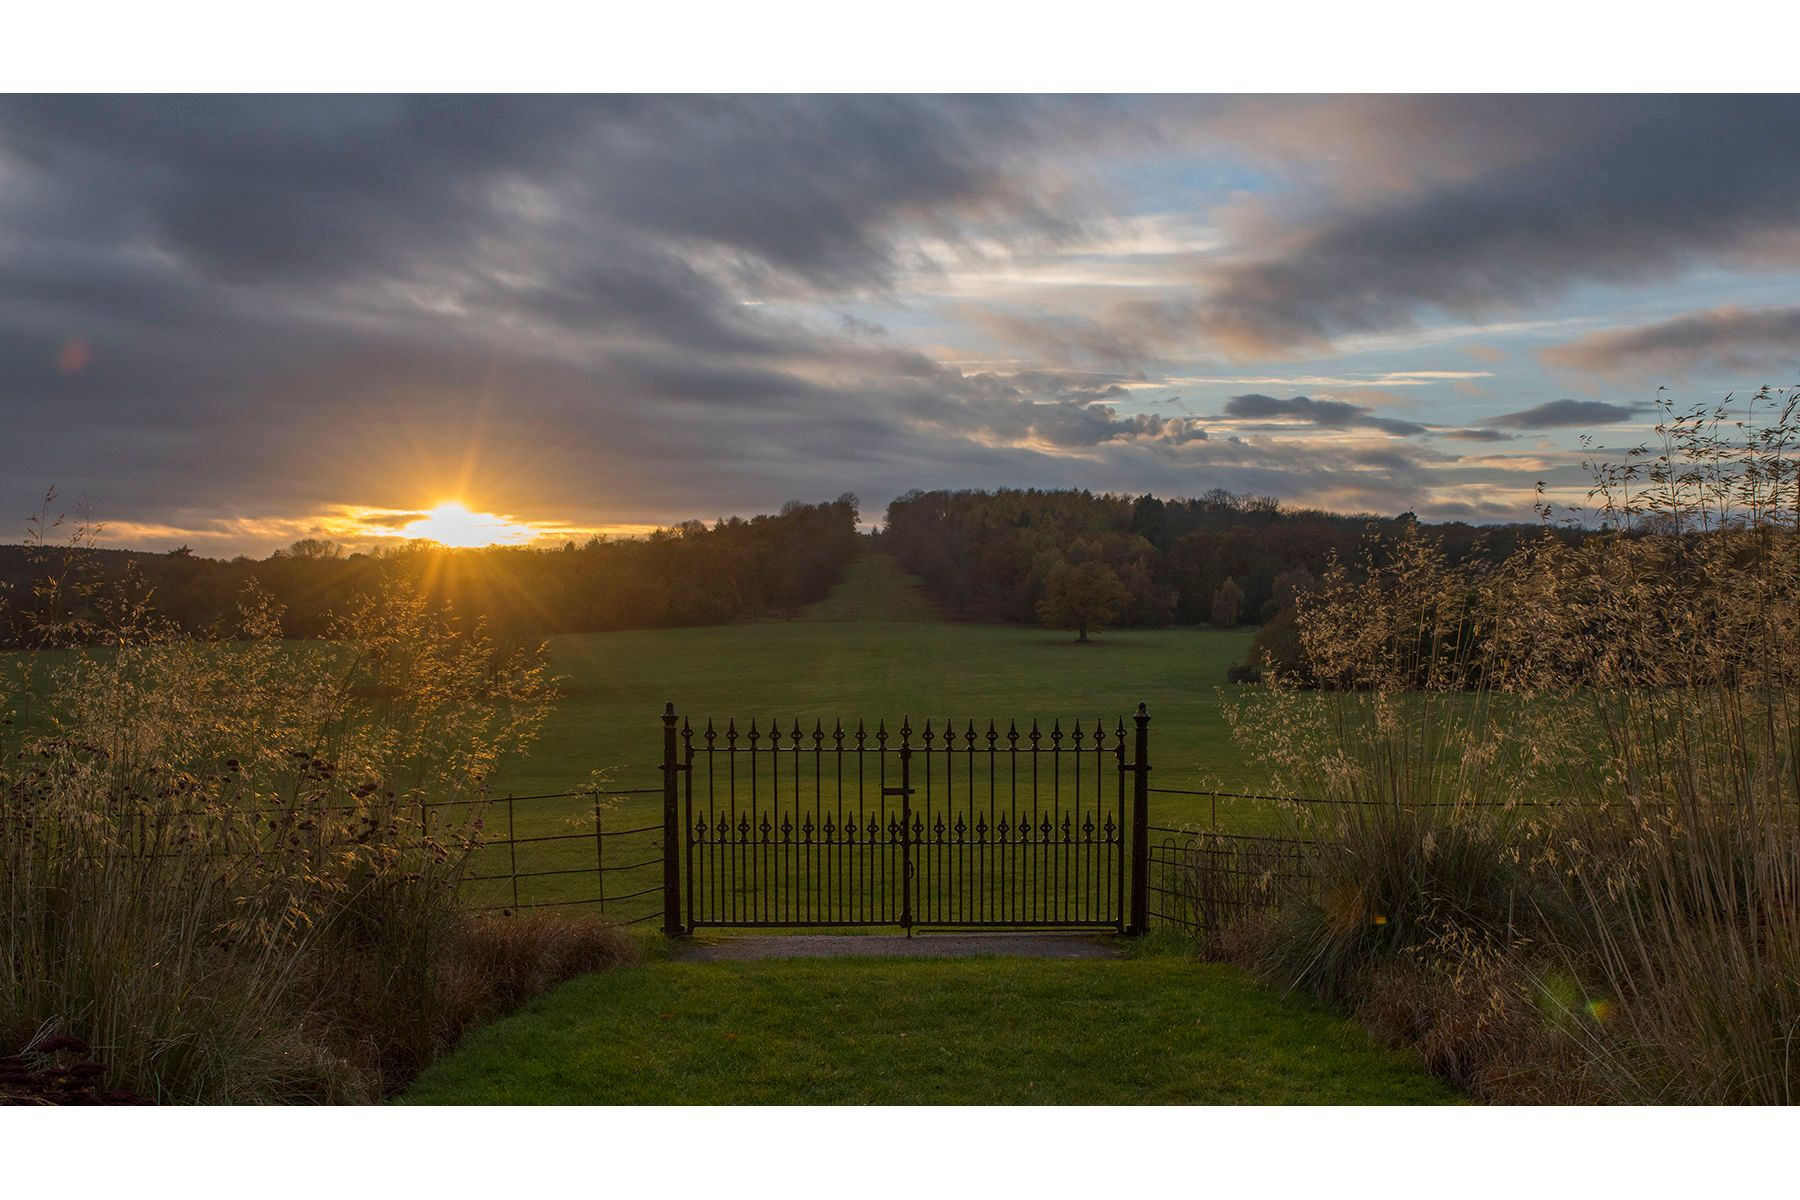 Ragley .Looking west  from the Garden in late Autumn at sunset .